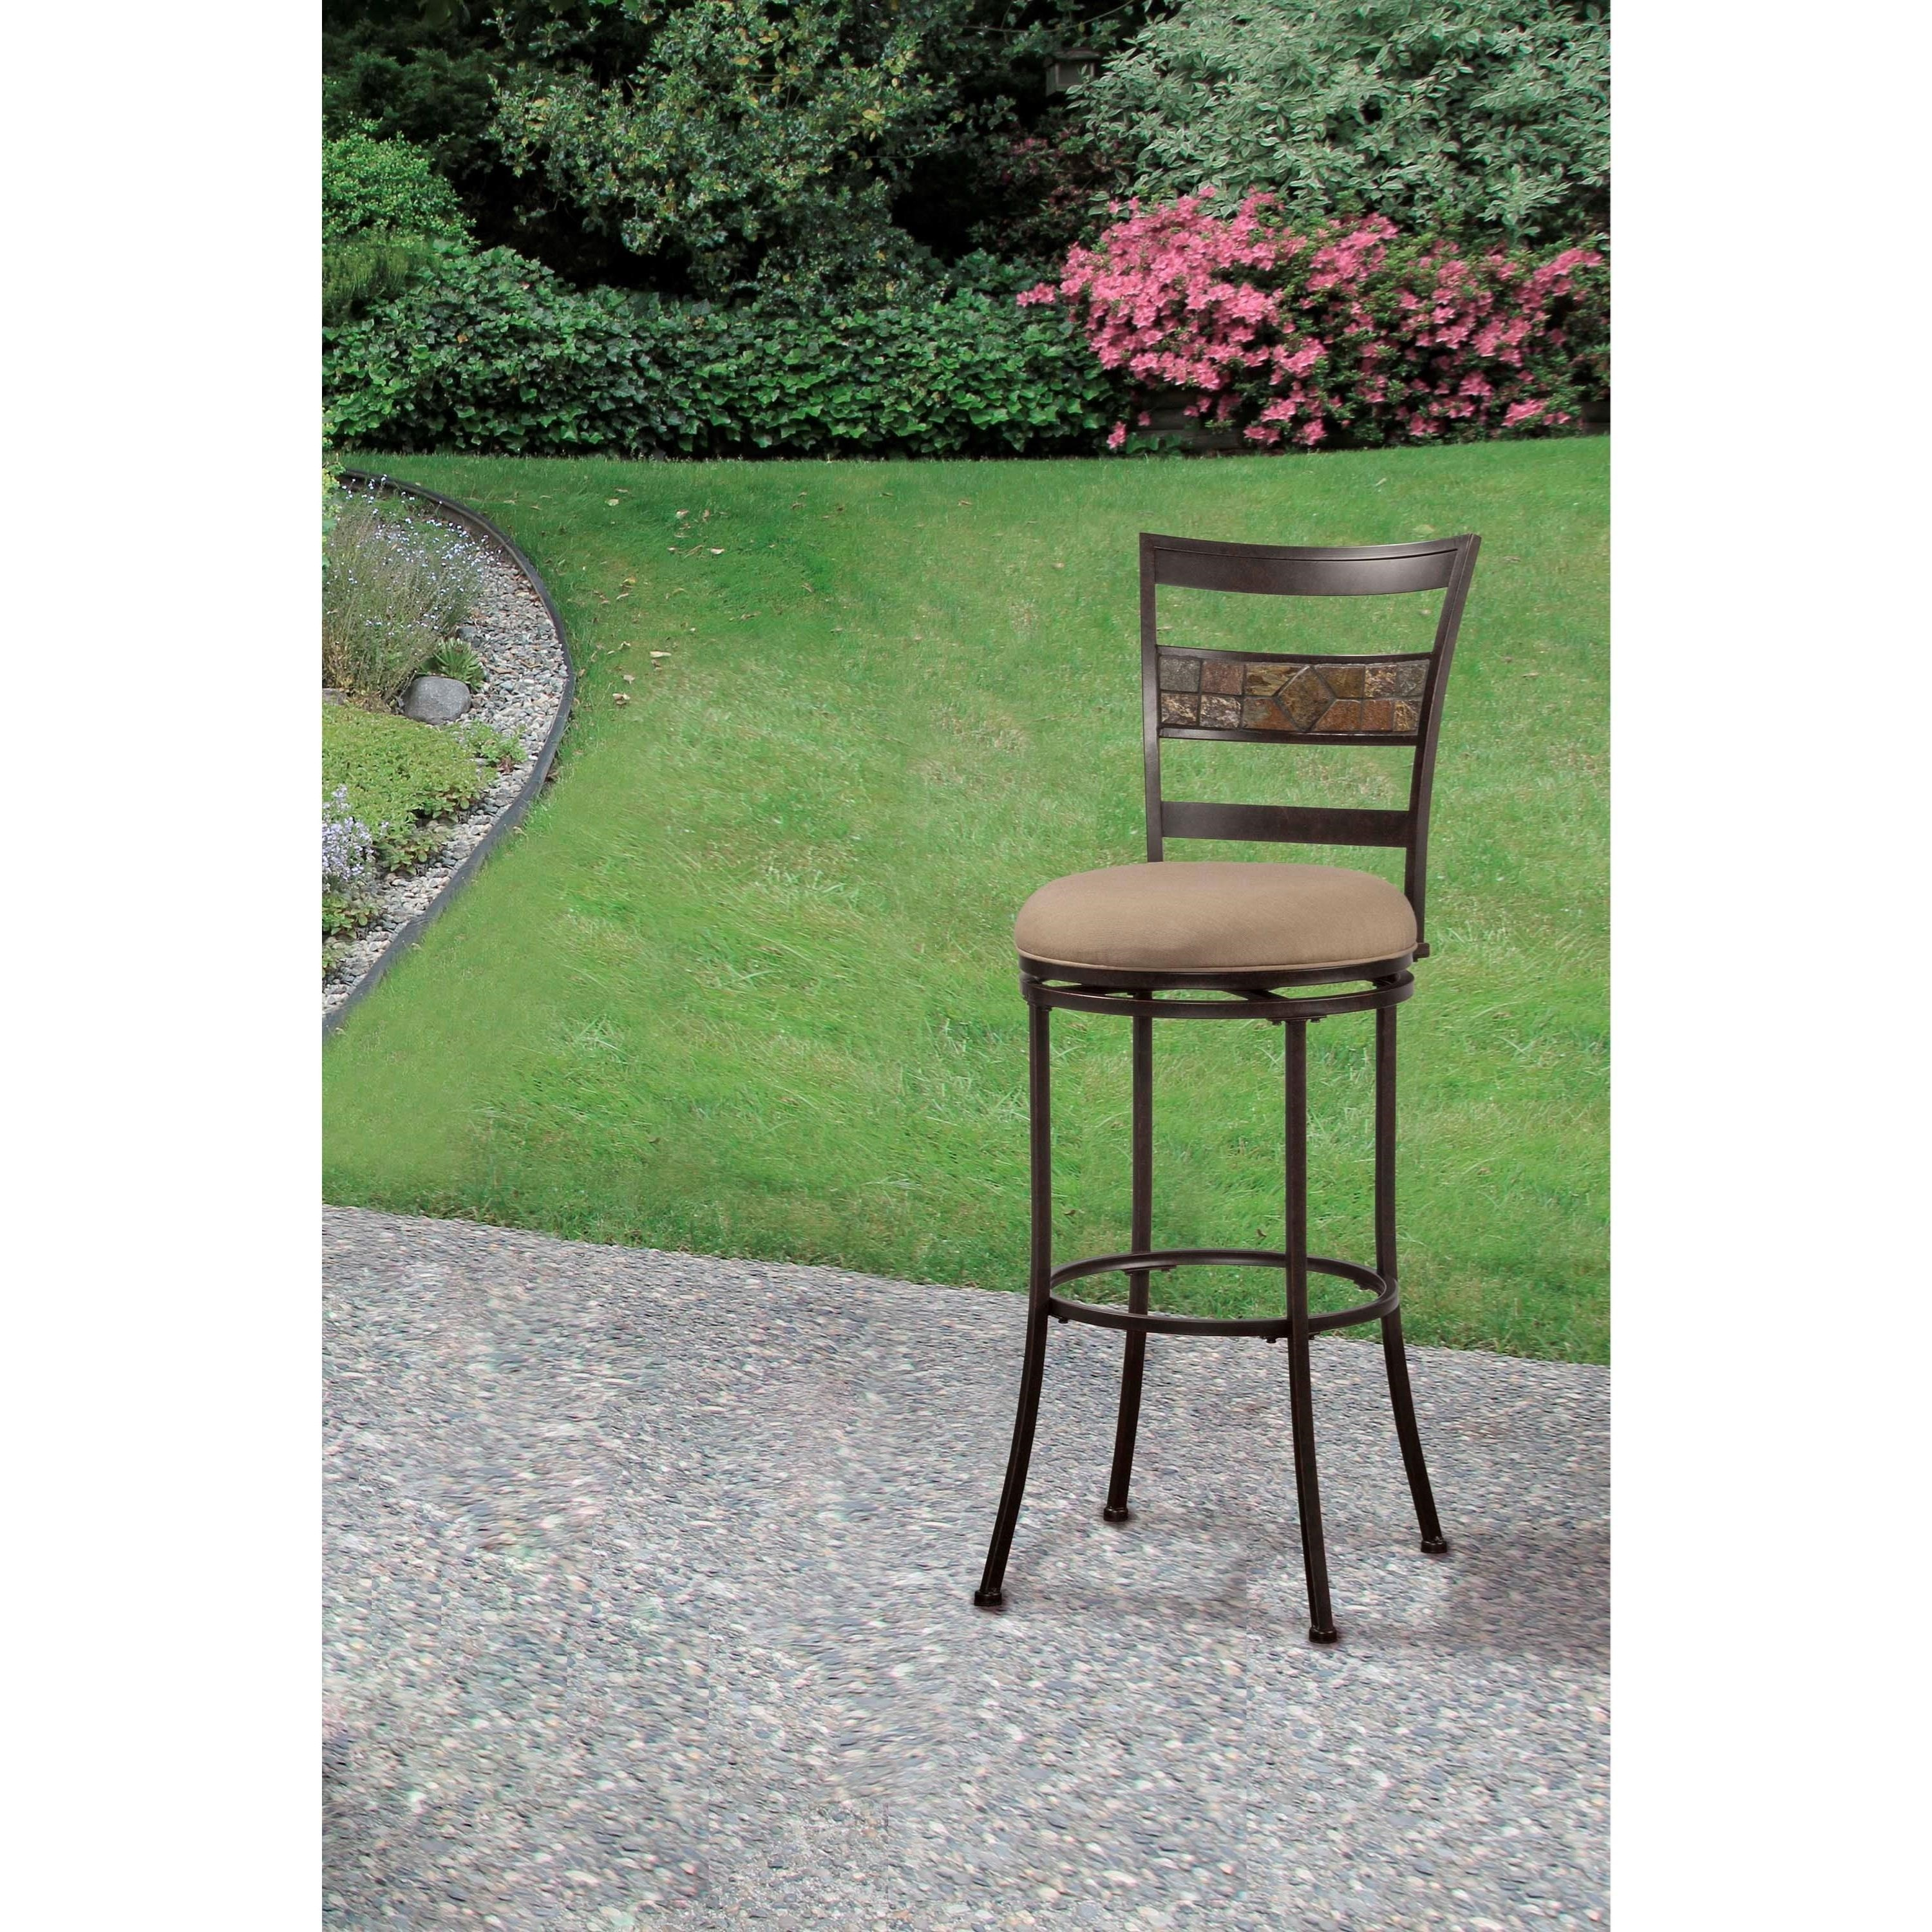 Indoor Outdoor Stools Swivel Counter Stool With Ladderback